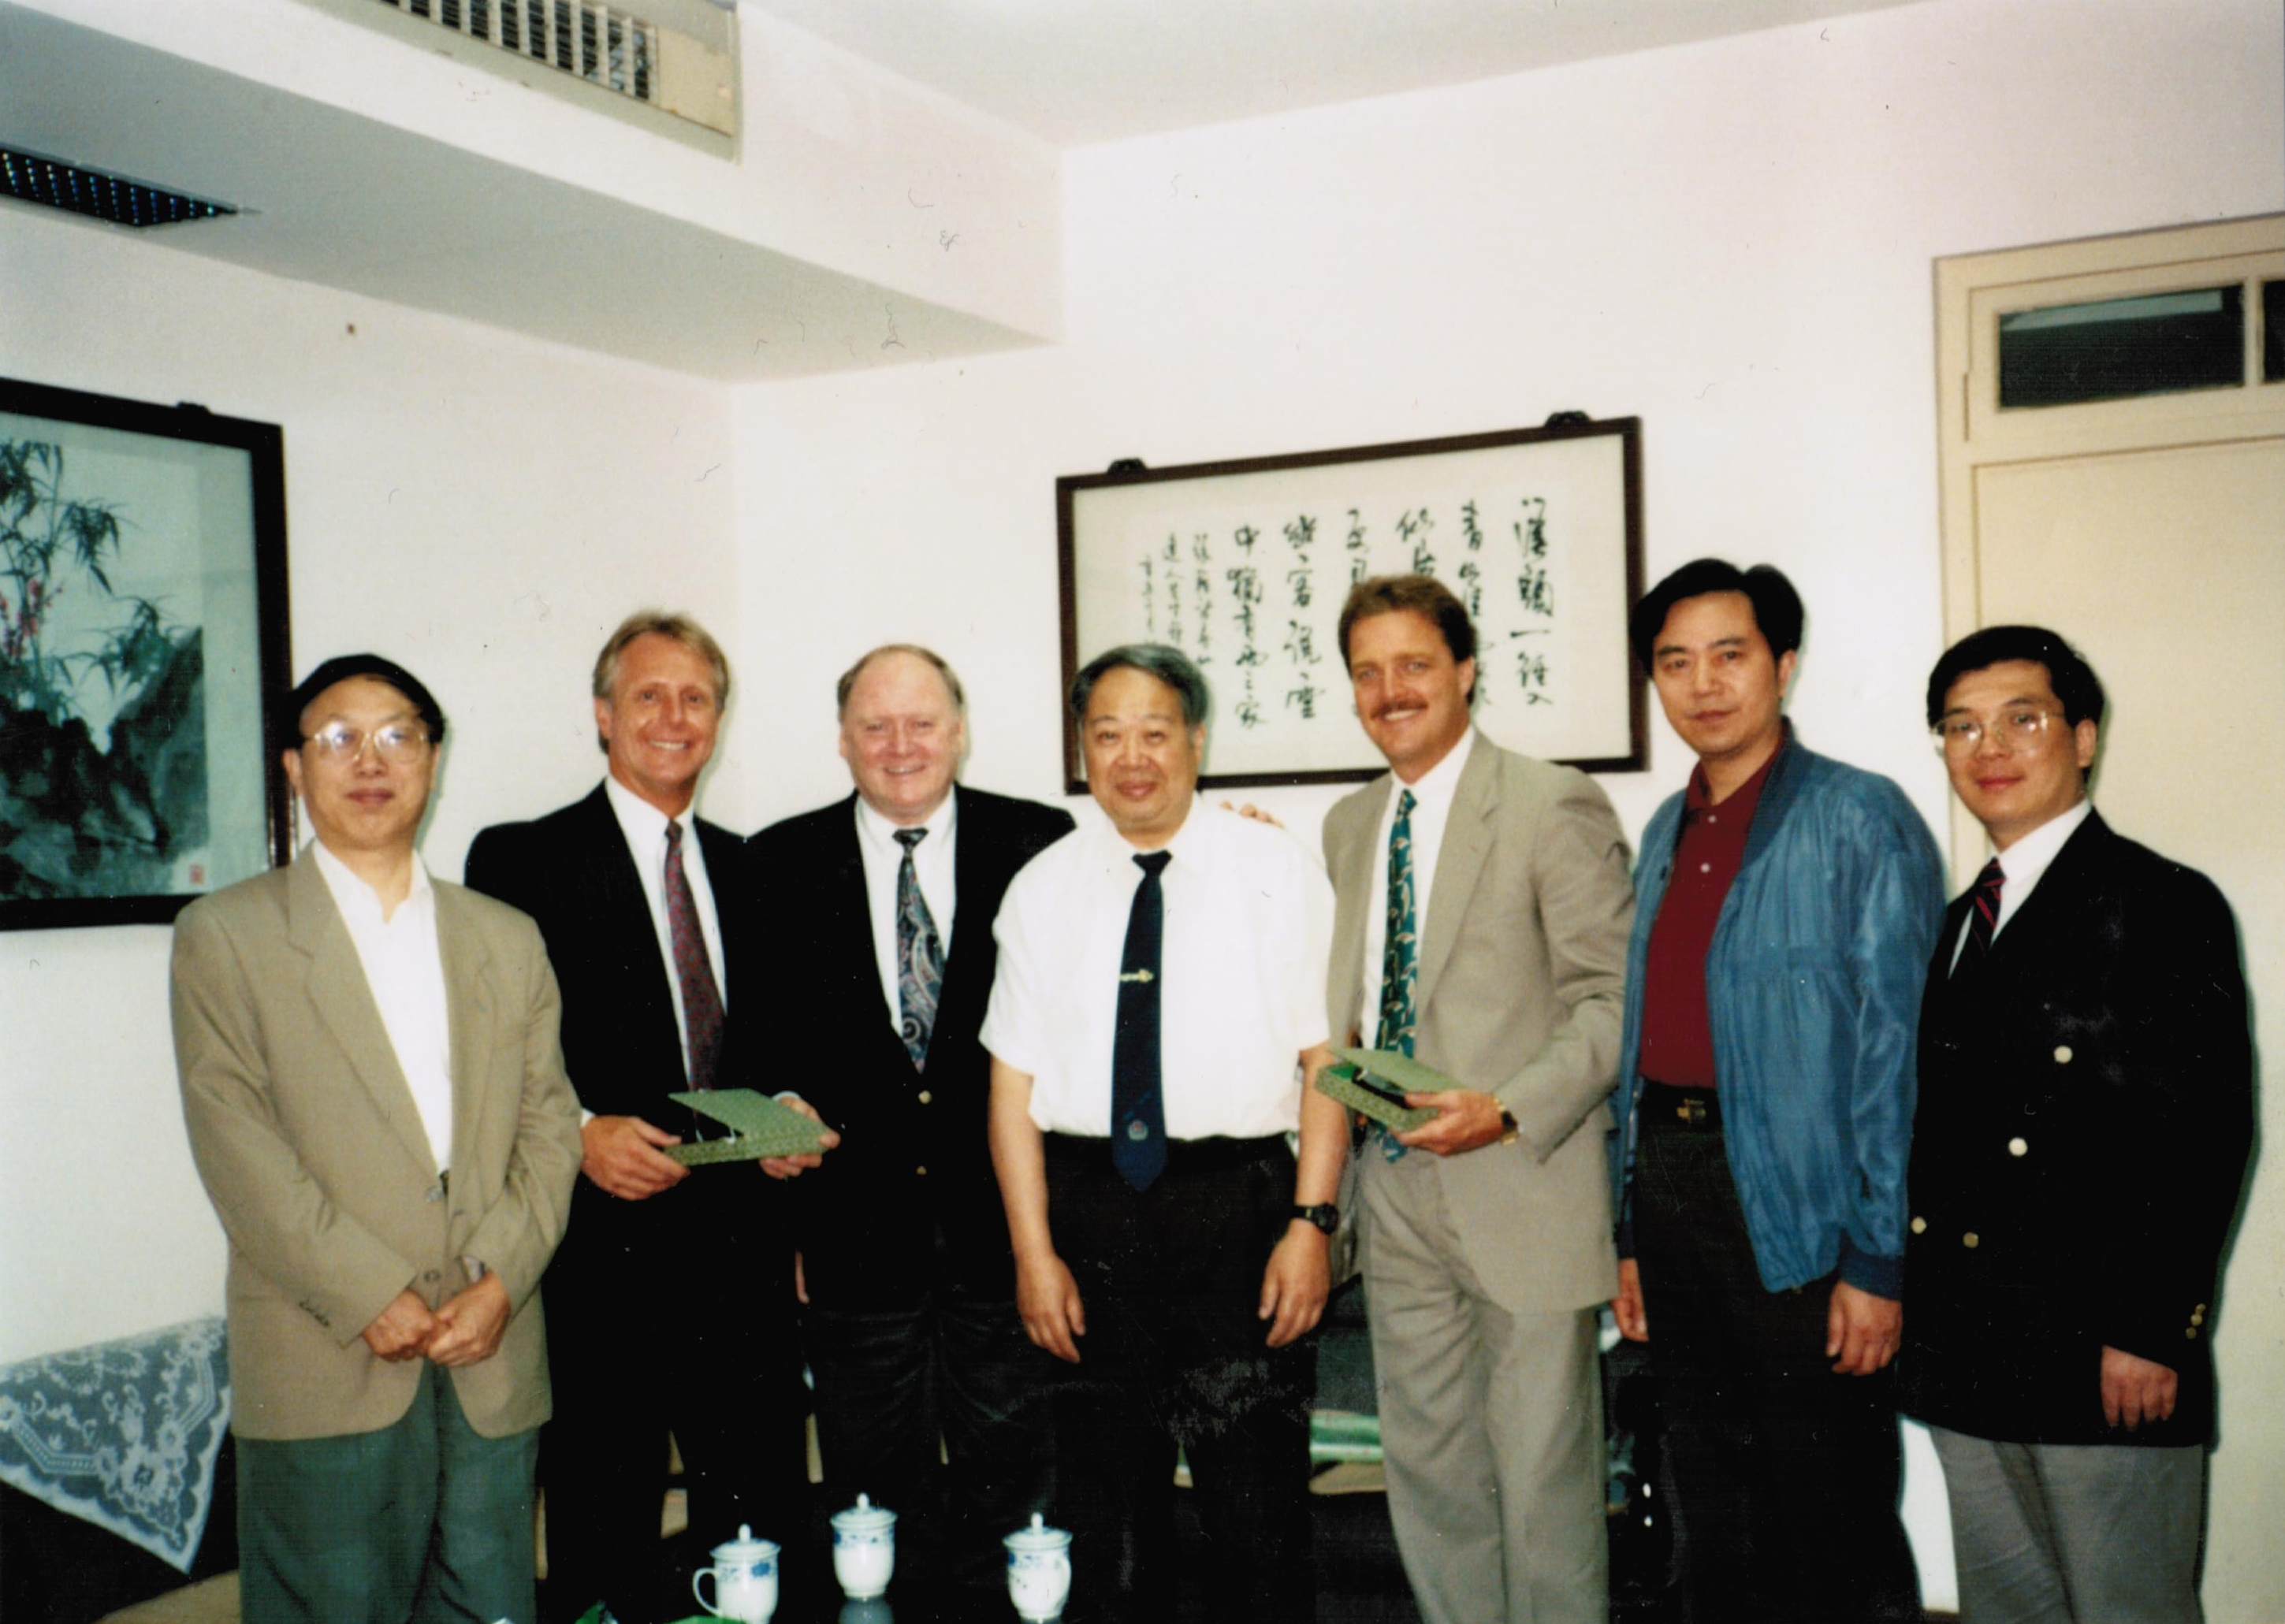 Receiving an award in Shanghai, China (third from right).